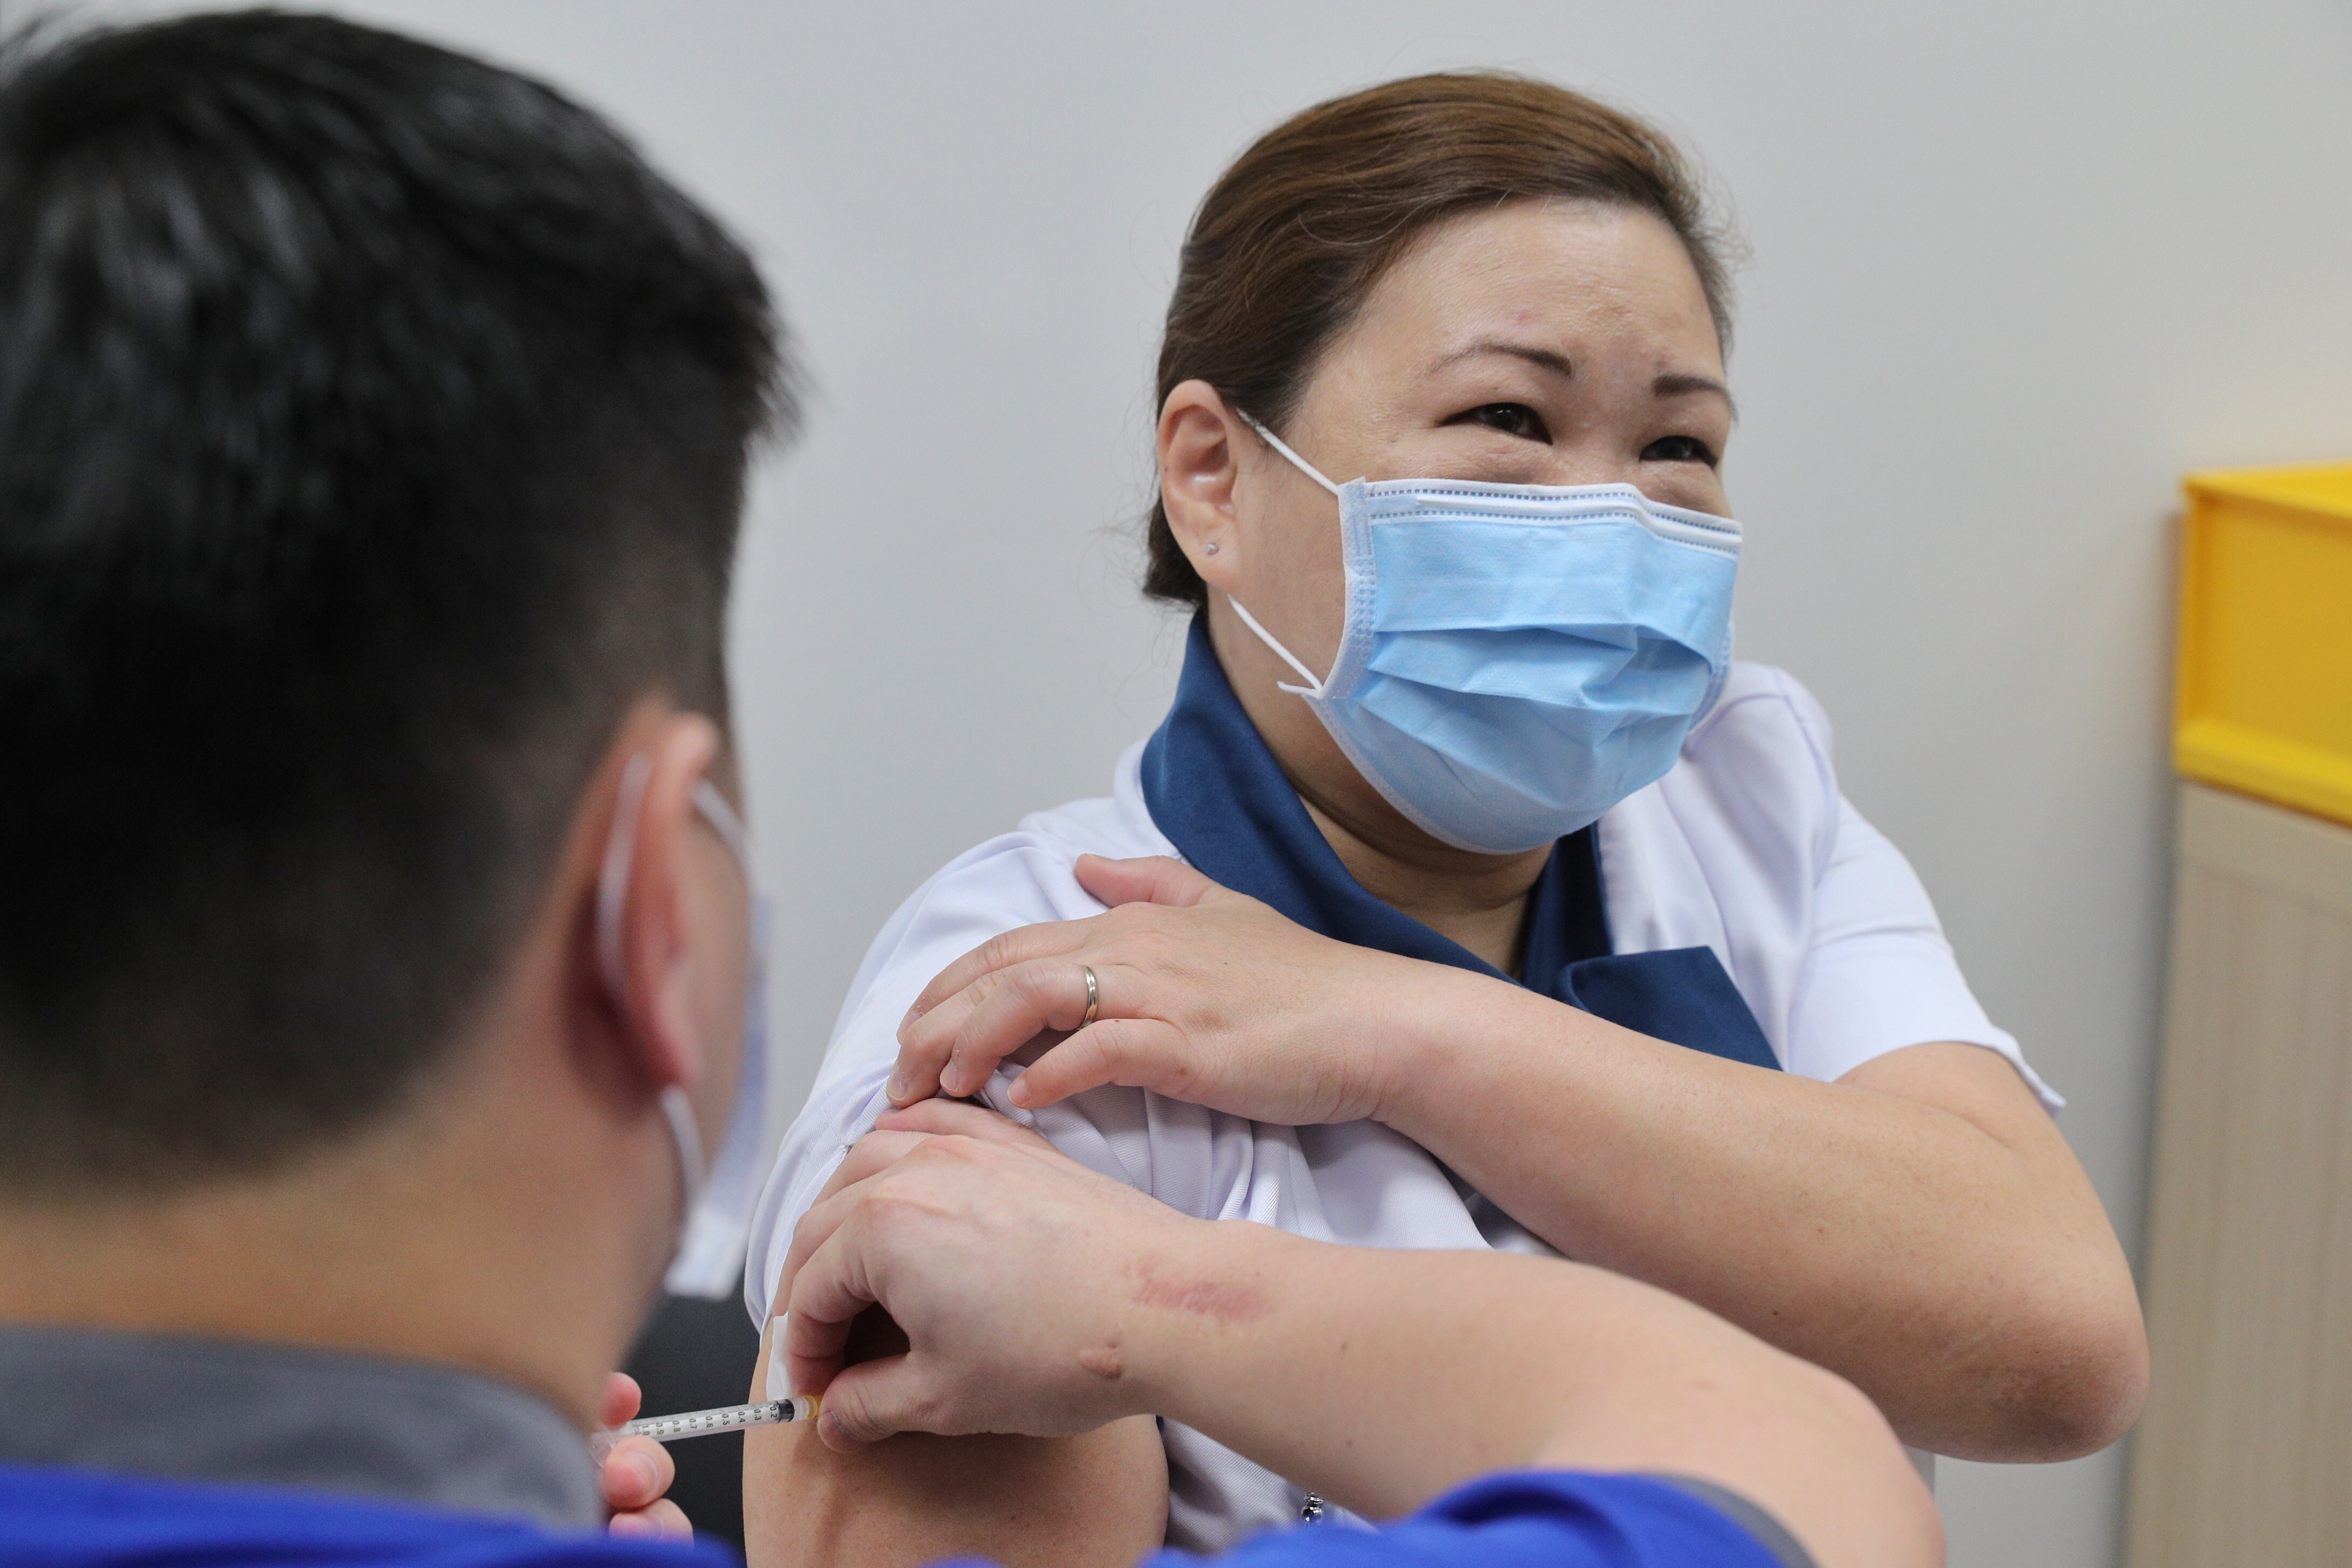 Healthcare worker Sarah Lim receives her coronavirus disease (COVID-19) vaccine at the National Centre for Infectious Diseases (NCID) in Singapore December 30, 2020.  Lee Jia Wen/Ministry of Communications and Information/Handout via REUTERS